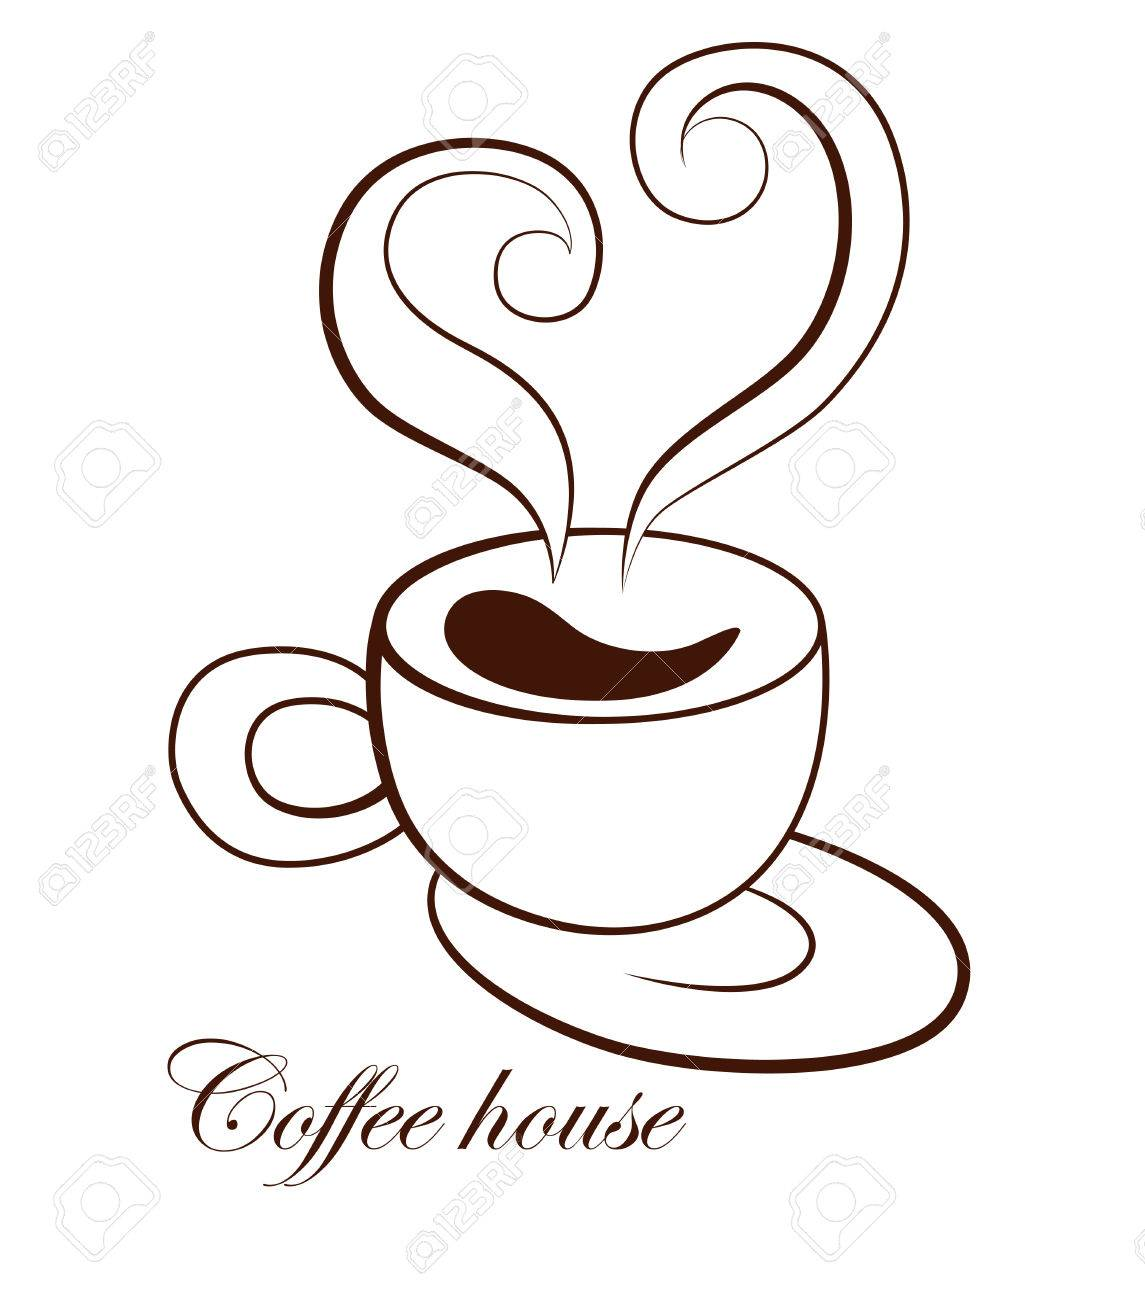 Stylized Image Of A Cup Of Coffee With Saucer And Steam In The Royalty Free Cliparts Vectors And Stock Illustration Image 67484640